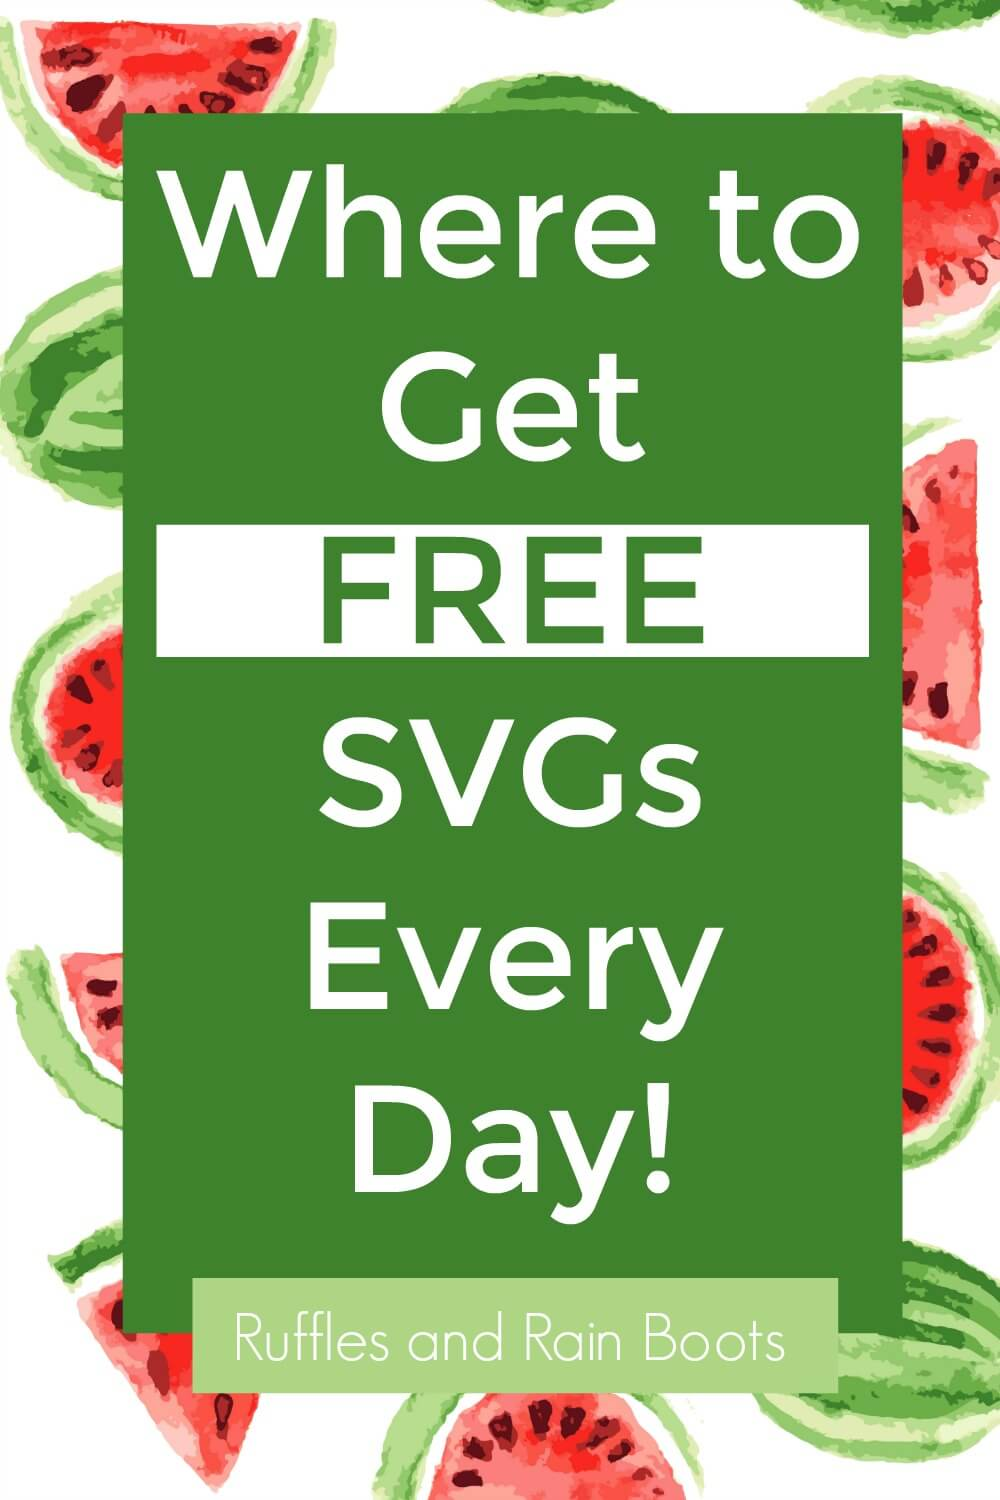 watermelon background with text which reads where to get free svgs every day